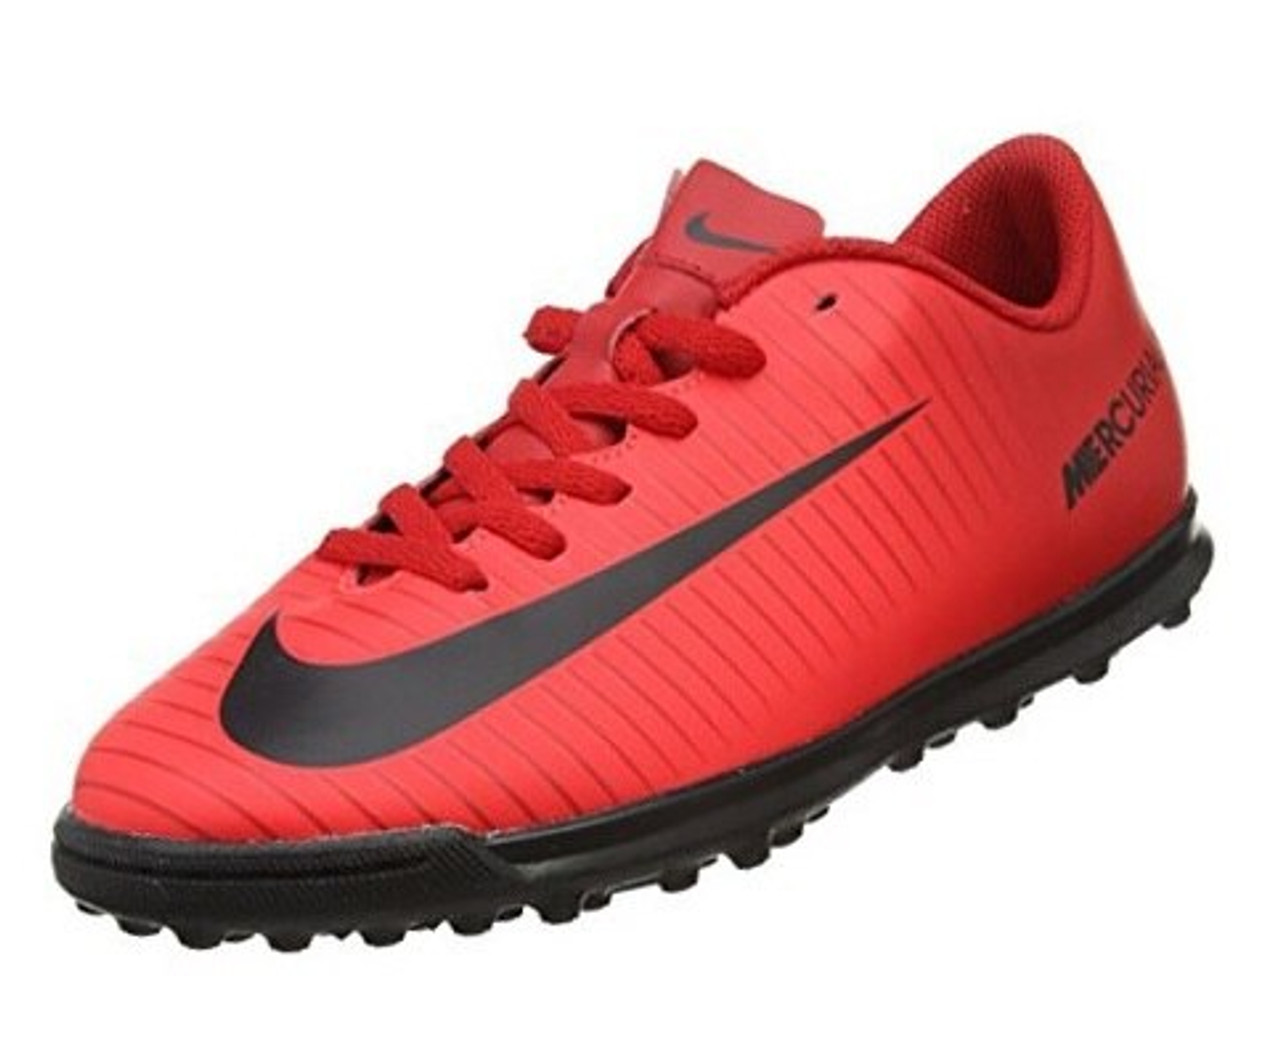 fecha Paternal Cerdito  JR Nike MercurialX Vortex III TF - University Red/Black/Bright Crimson-  (061220) - ohp soccer